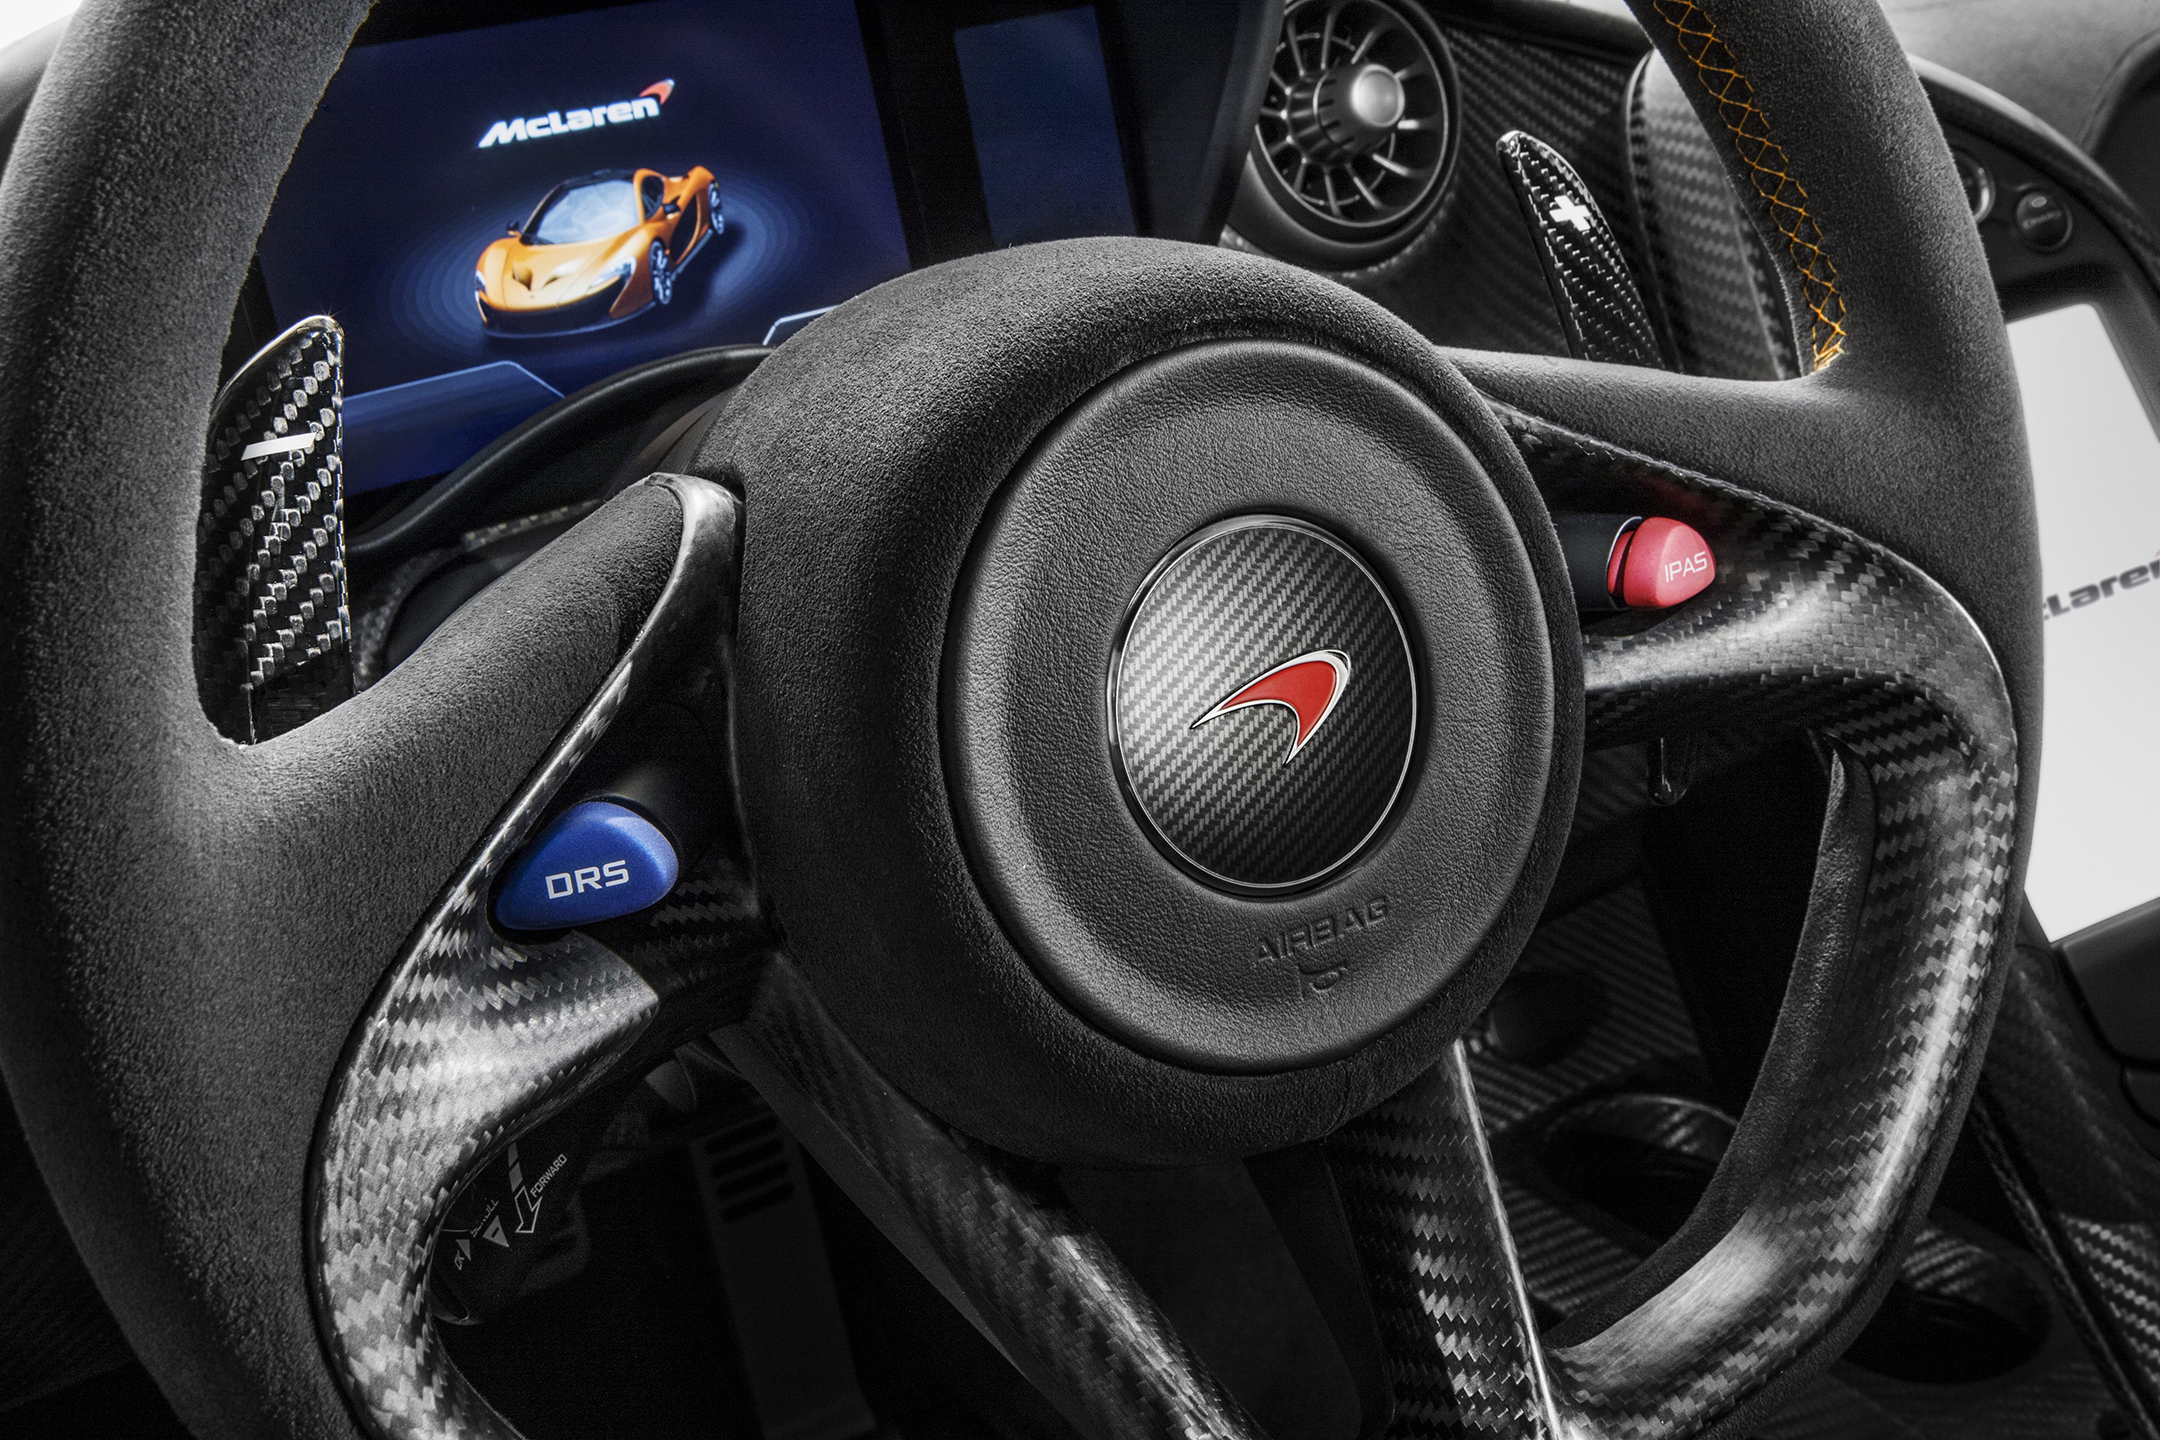 McLaren P1 - 2013 - driving wheel / volant